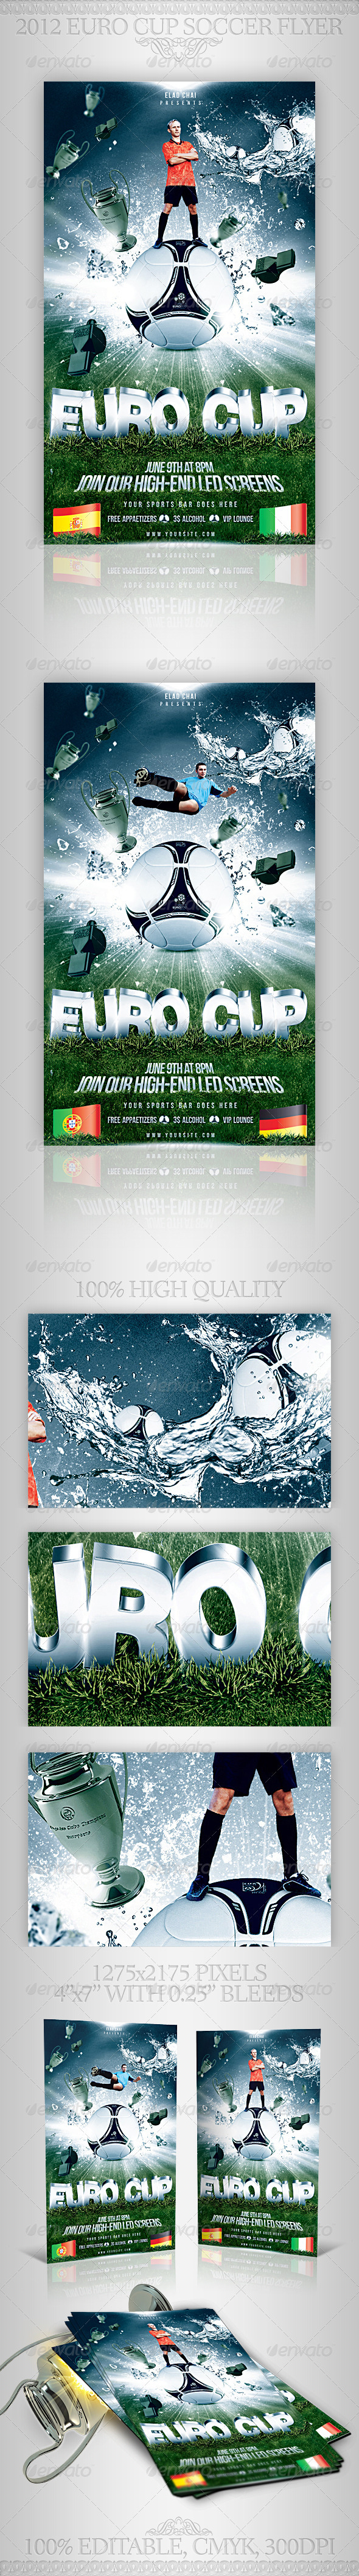 2012 Euro Cup Flyer Template - Sports Events